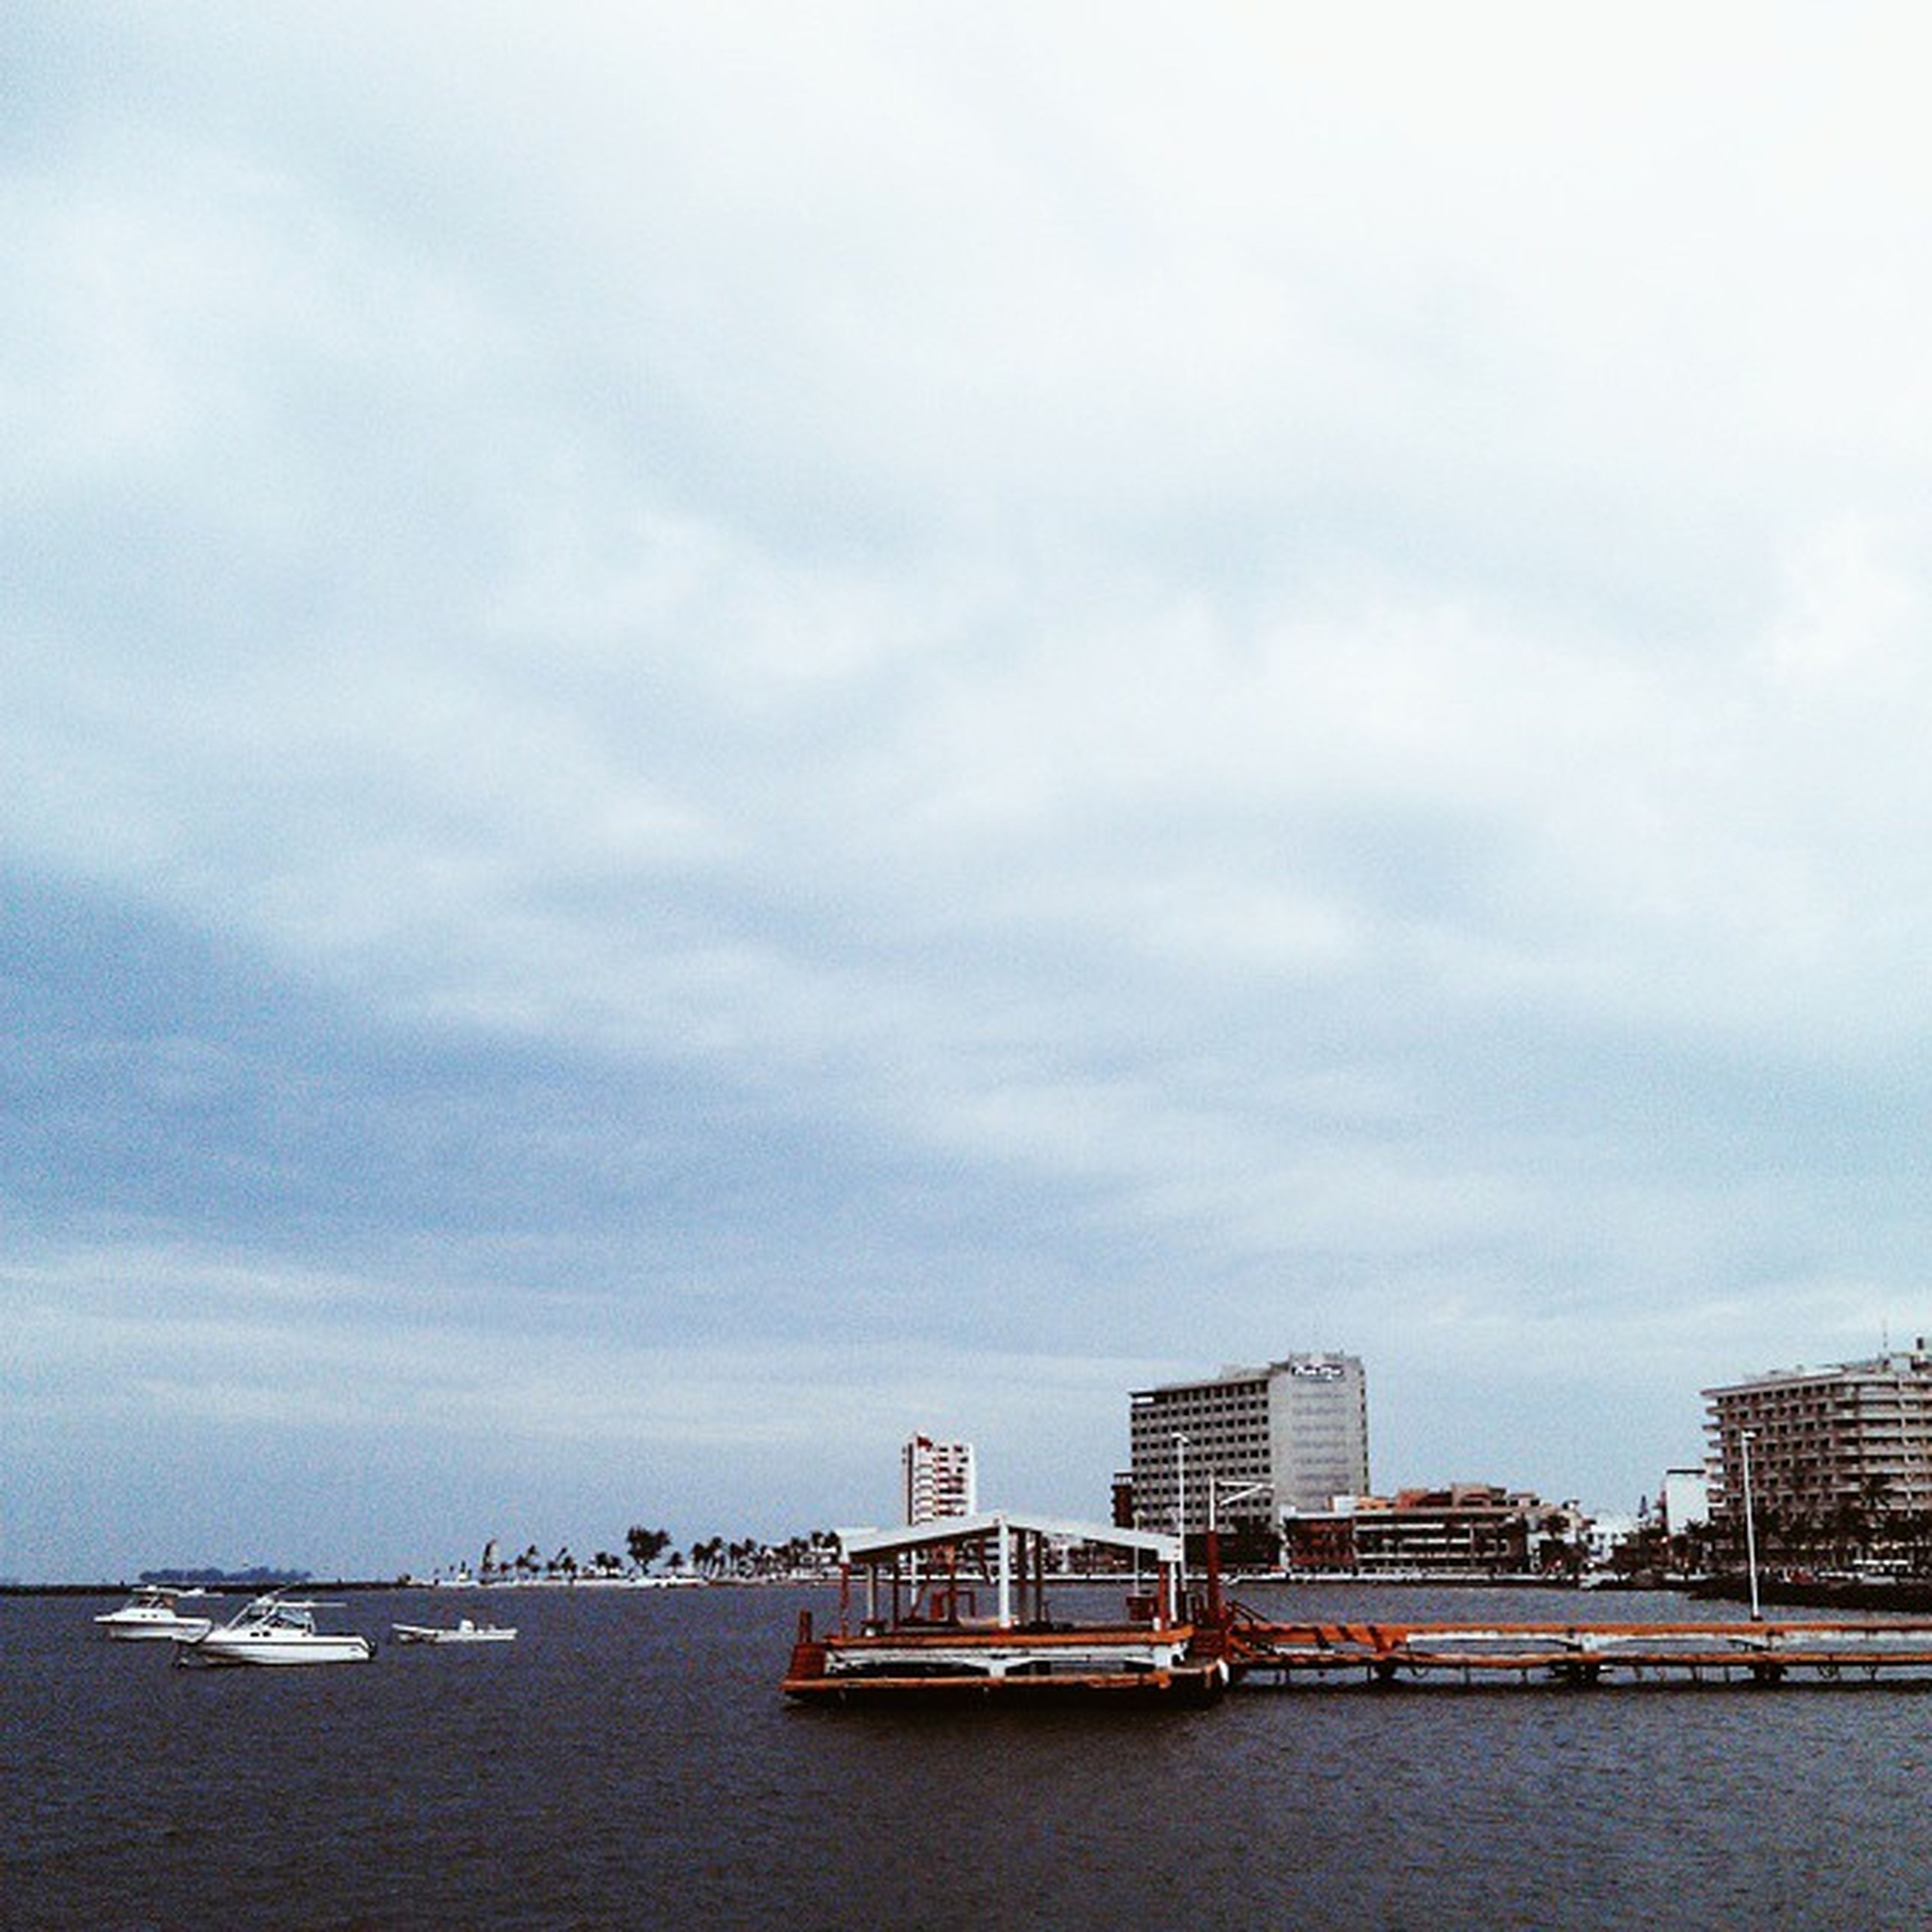 water, waterfront, sea, sky, architecture, built structure, building exterior, nautical vessel, city, cloud - sky, transportation, cloudy, river, mode of transport, day, harbor, cloud, nature, outdoors, cityscape